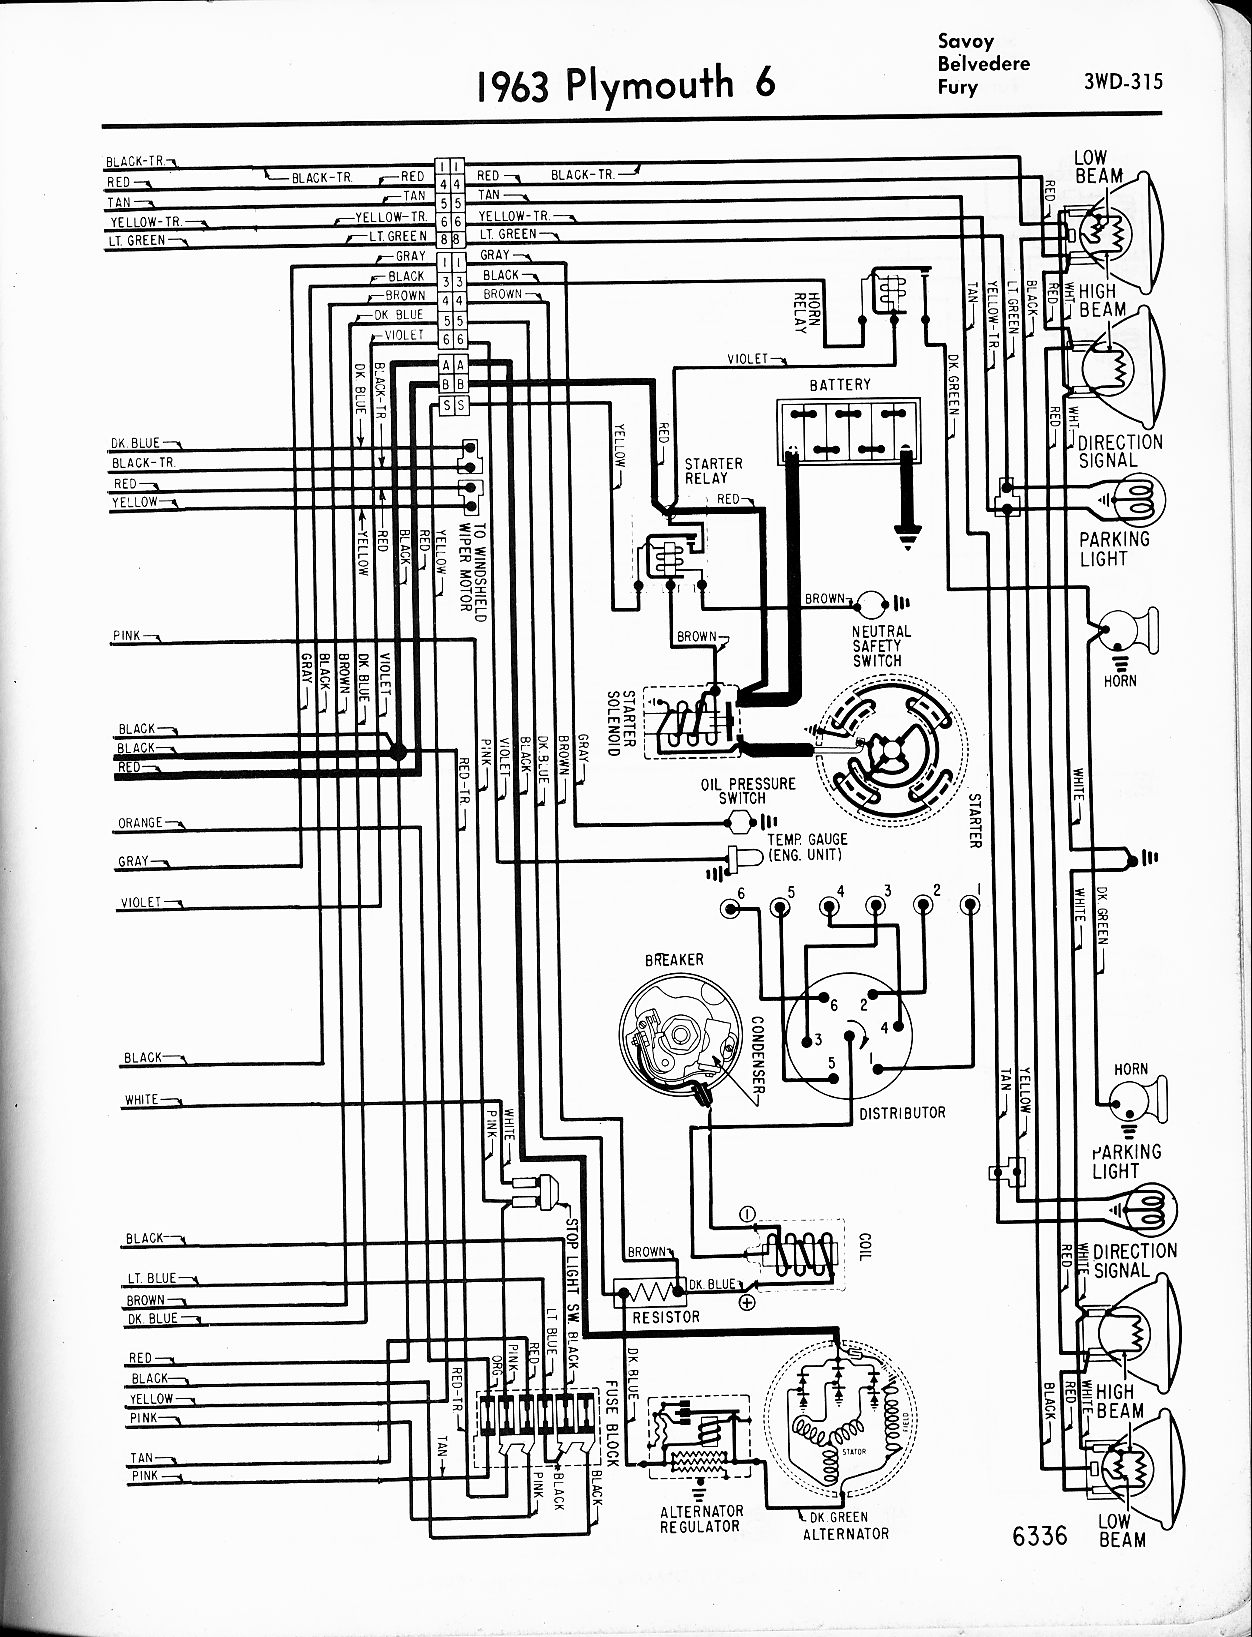 1968 fury wiring diagram wiring diagram wiring diagram for 1966 plymouth